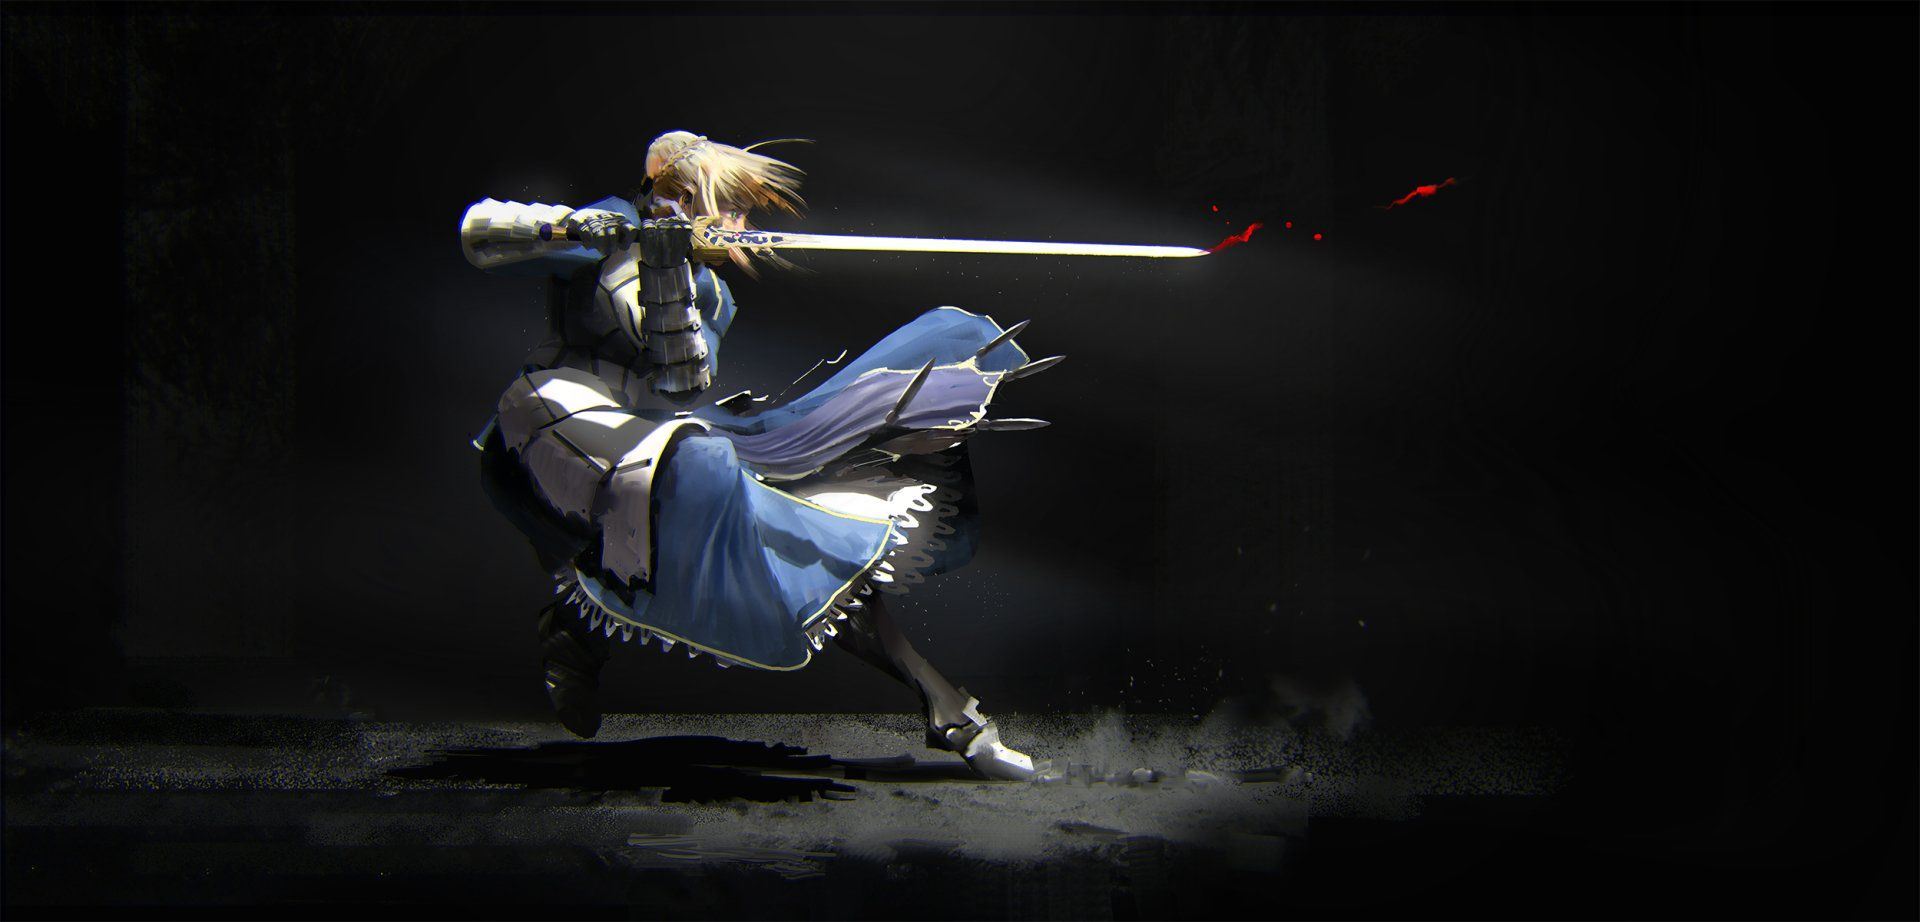 Anime Fate Stay Night Unlimited Blade Works Saber Fate Series Wallpaper Fate Stay Night Anime Fate Stay Night Fate Anime Series Wallpaper anime fate stay saber fate